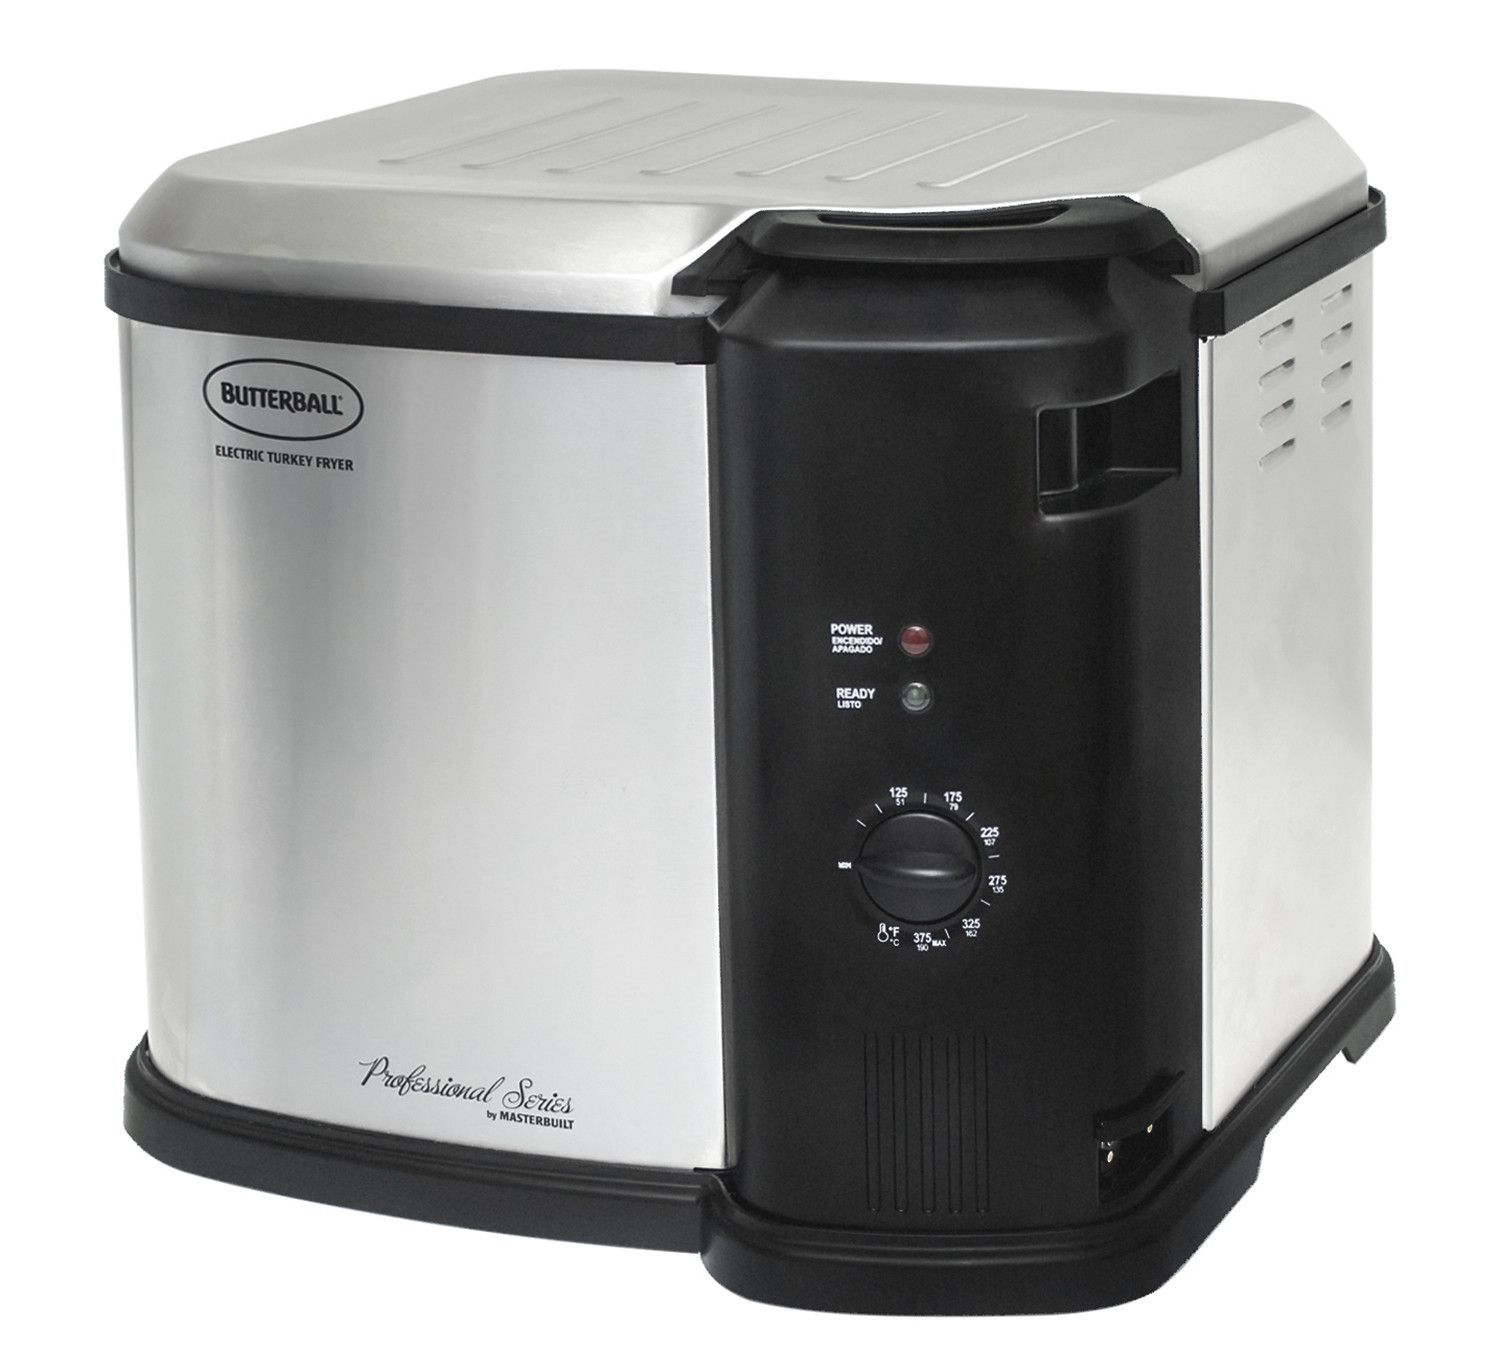 Features Butterball Collection Stainless Steel